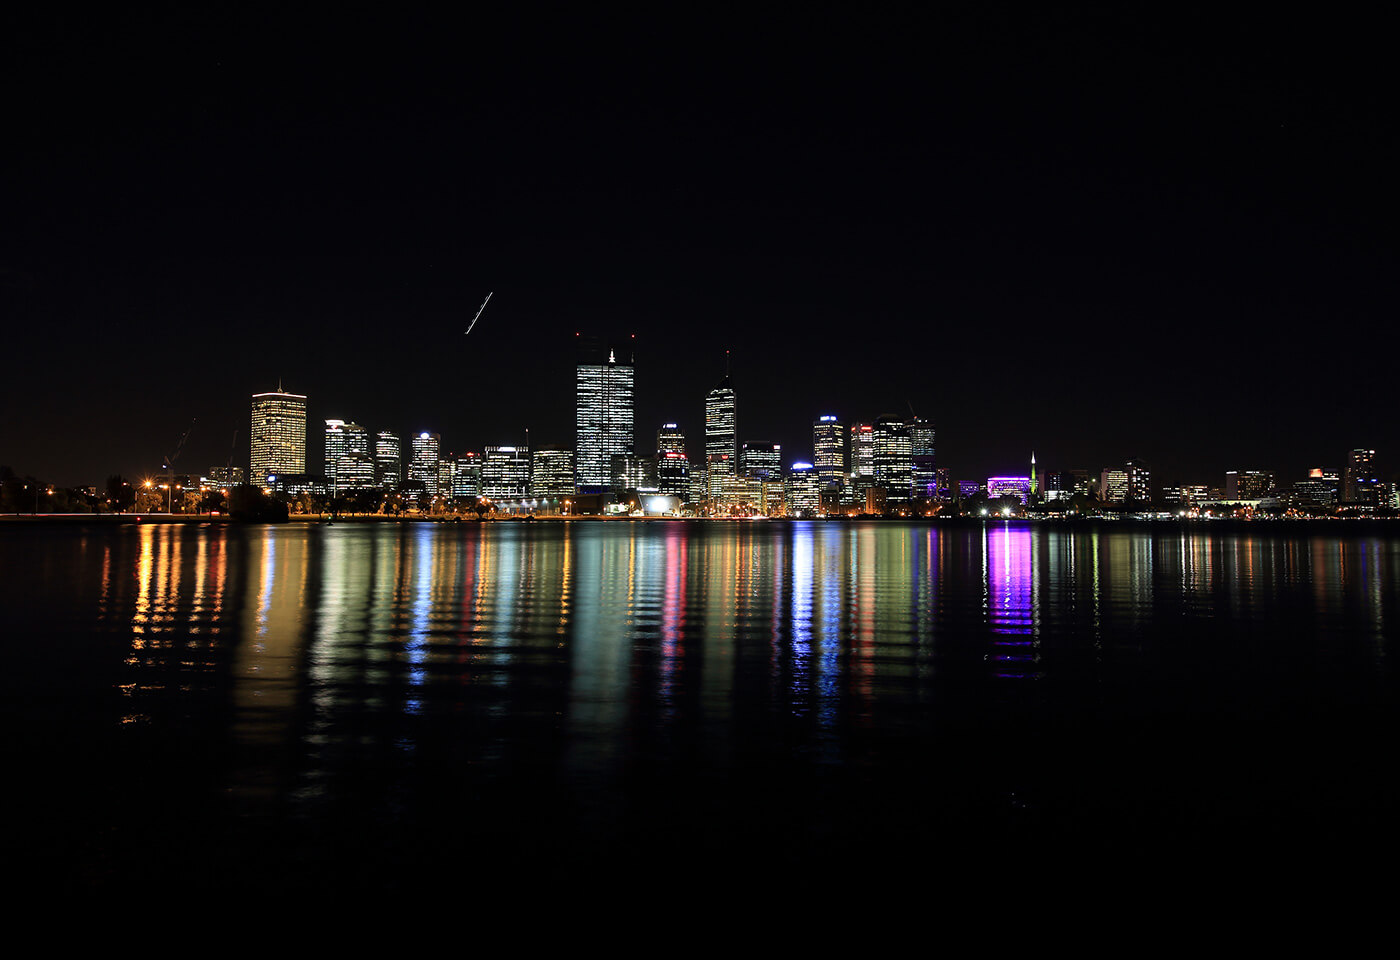 Panoramic landscape photograph of the Perth skyline at night